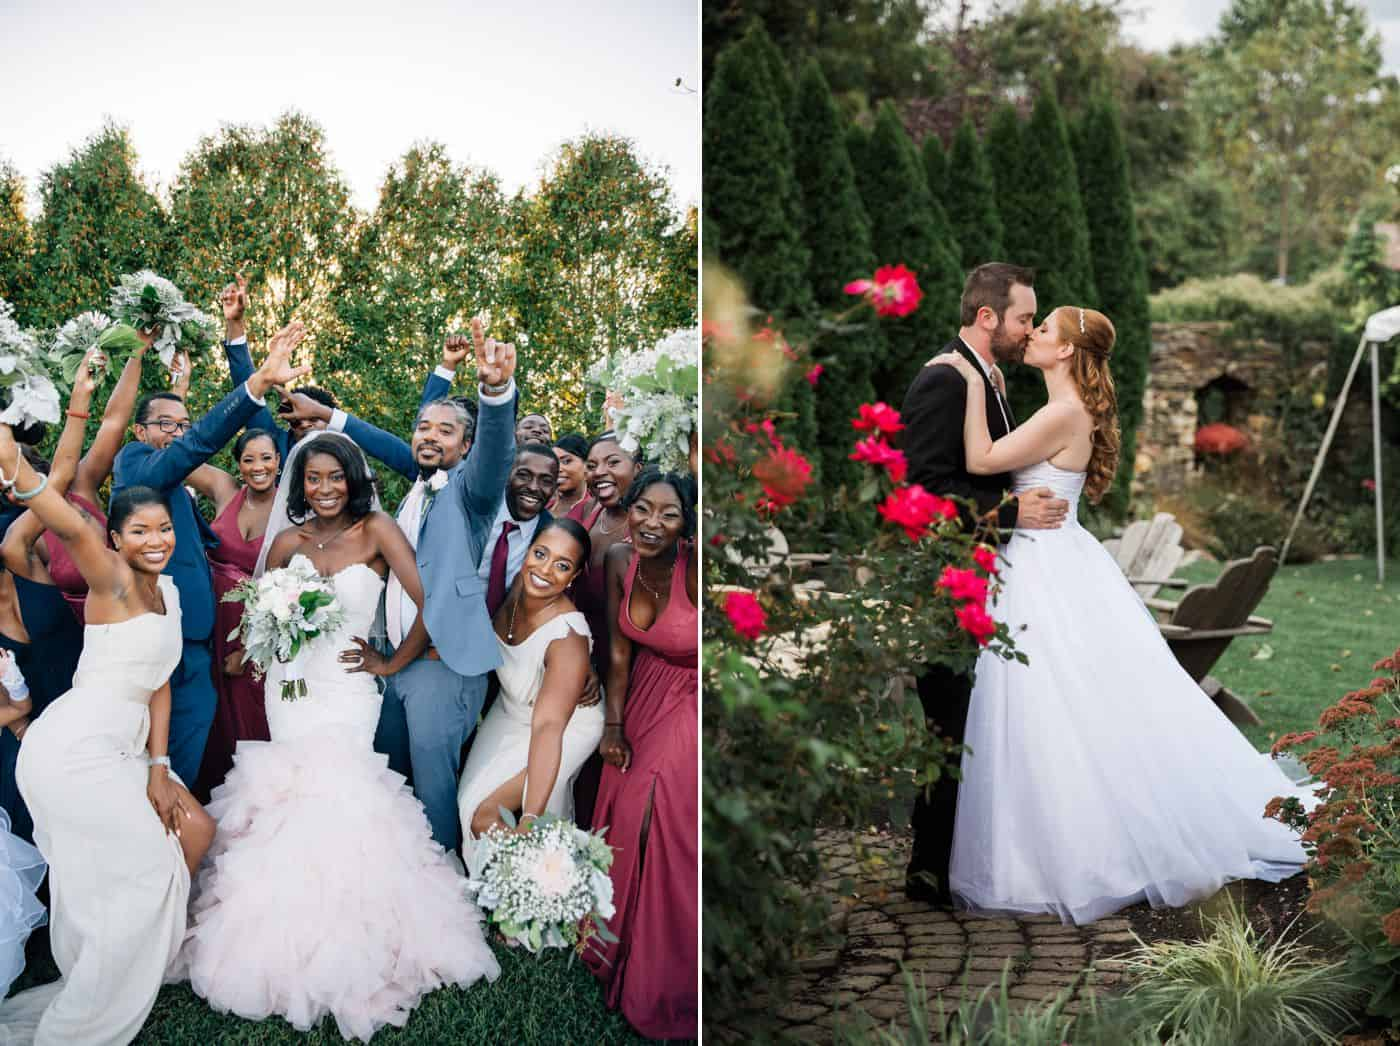 30 Photographers With Cheers-Worthy Reasons To Celebrate